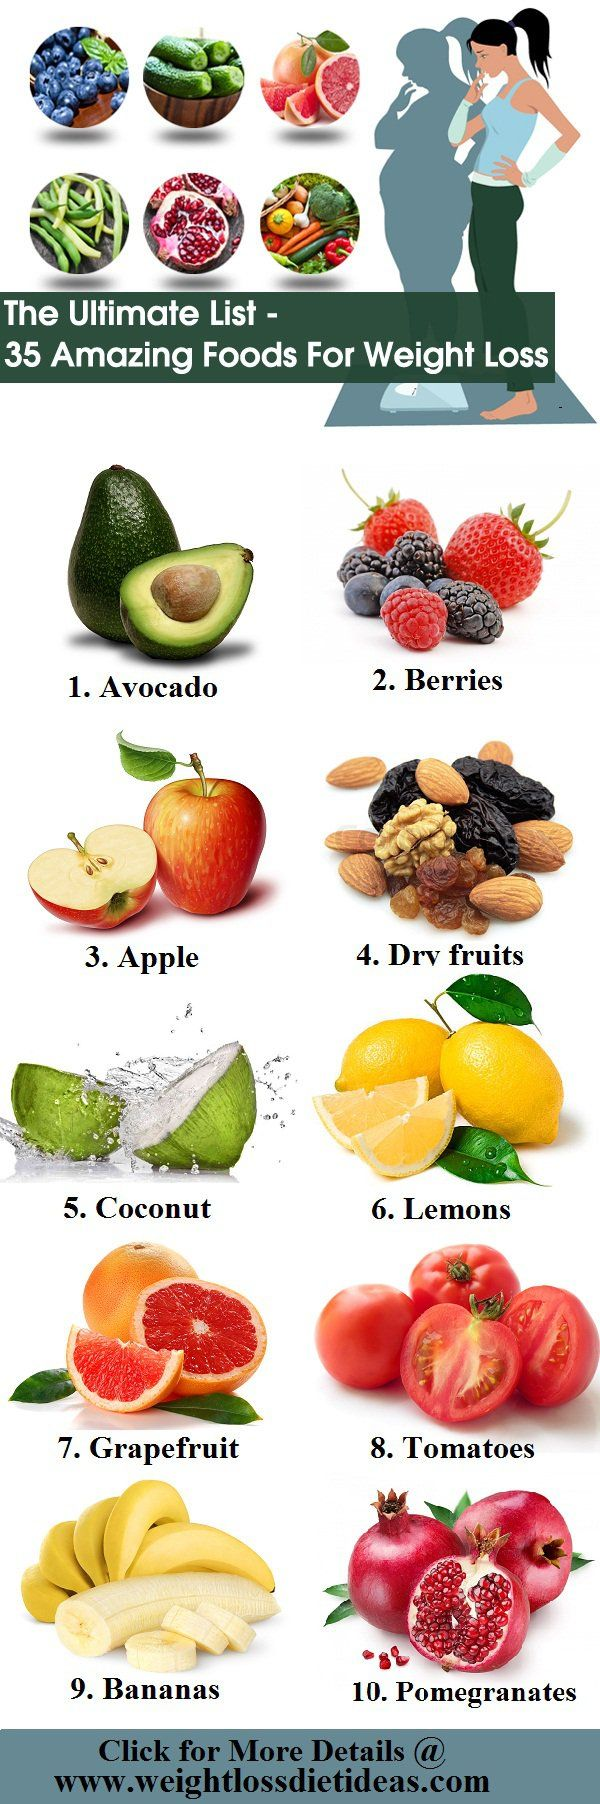 The Ultimate List – 35 Amazing Foods For Weight Loss  | followpics.co